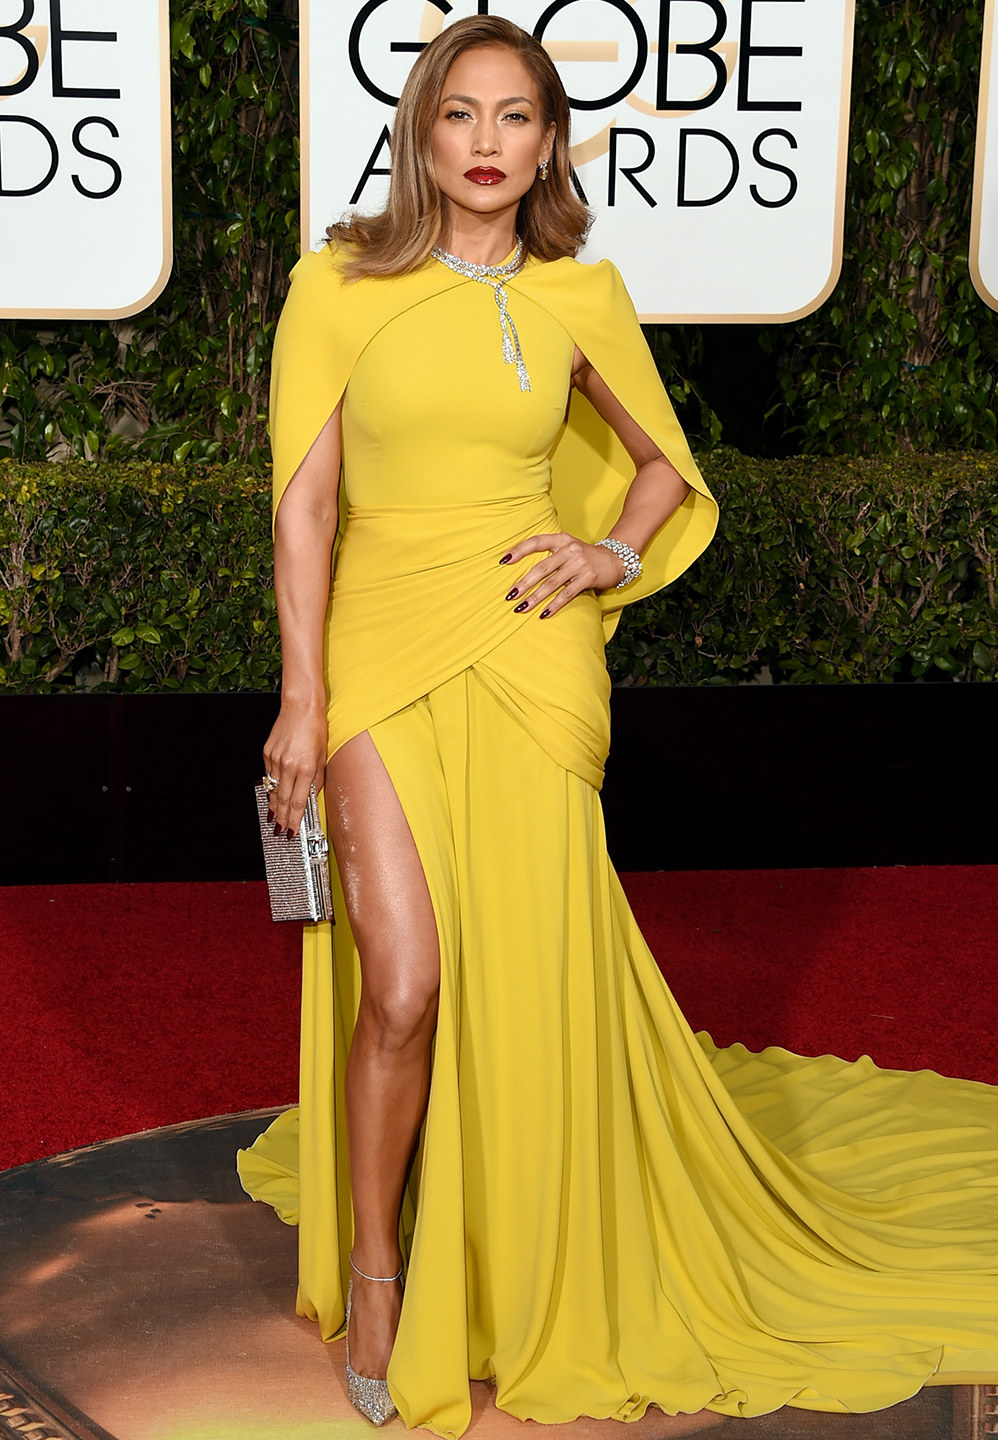 golden-globes-2016-jennifer-lopez.jpg (378.9 Kb)